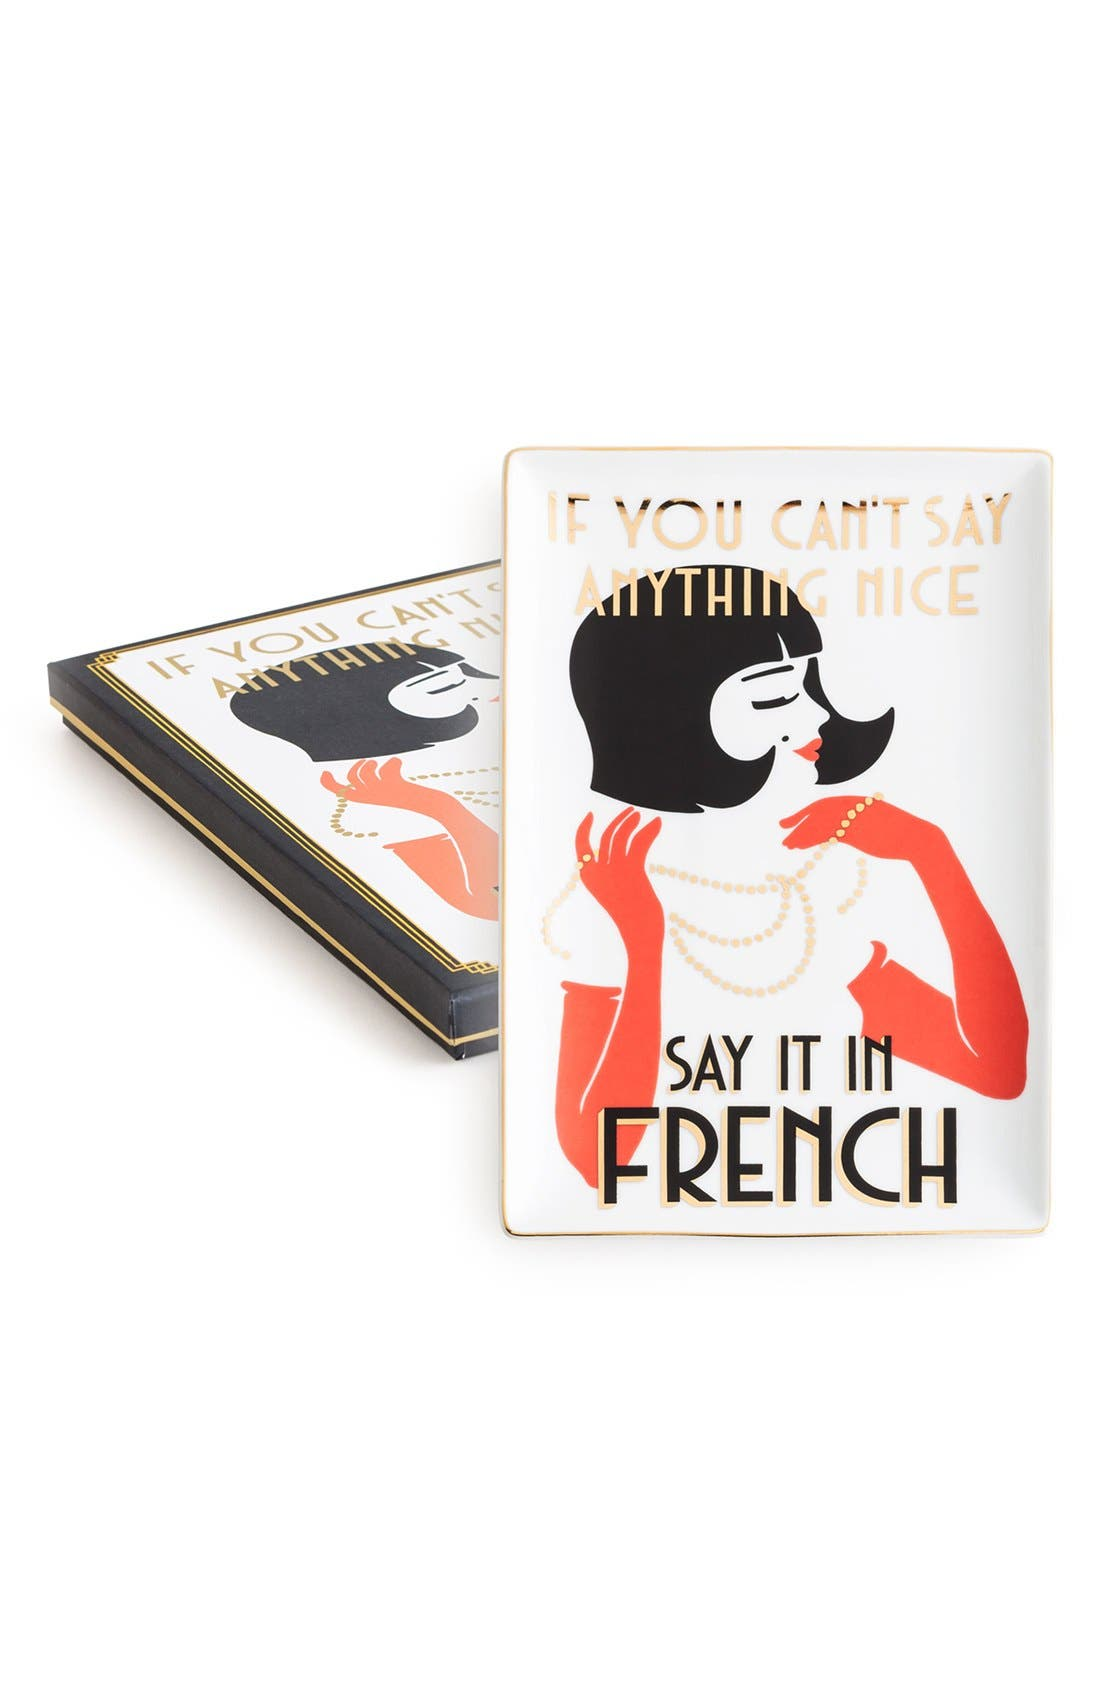 'If You Can't Say Anything Nice, Say It in French' Porcelain Tray,                             Main thumbnail 1, color,                             100